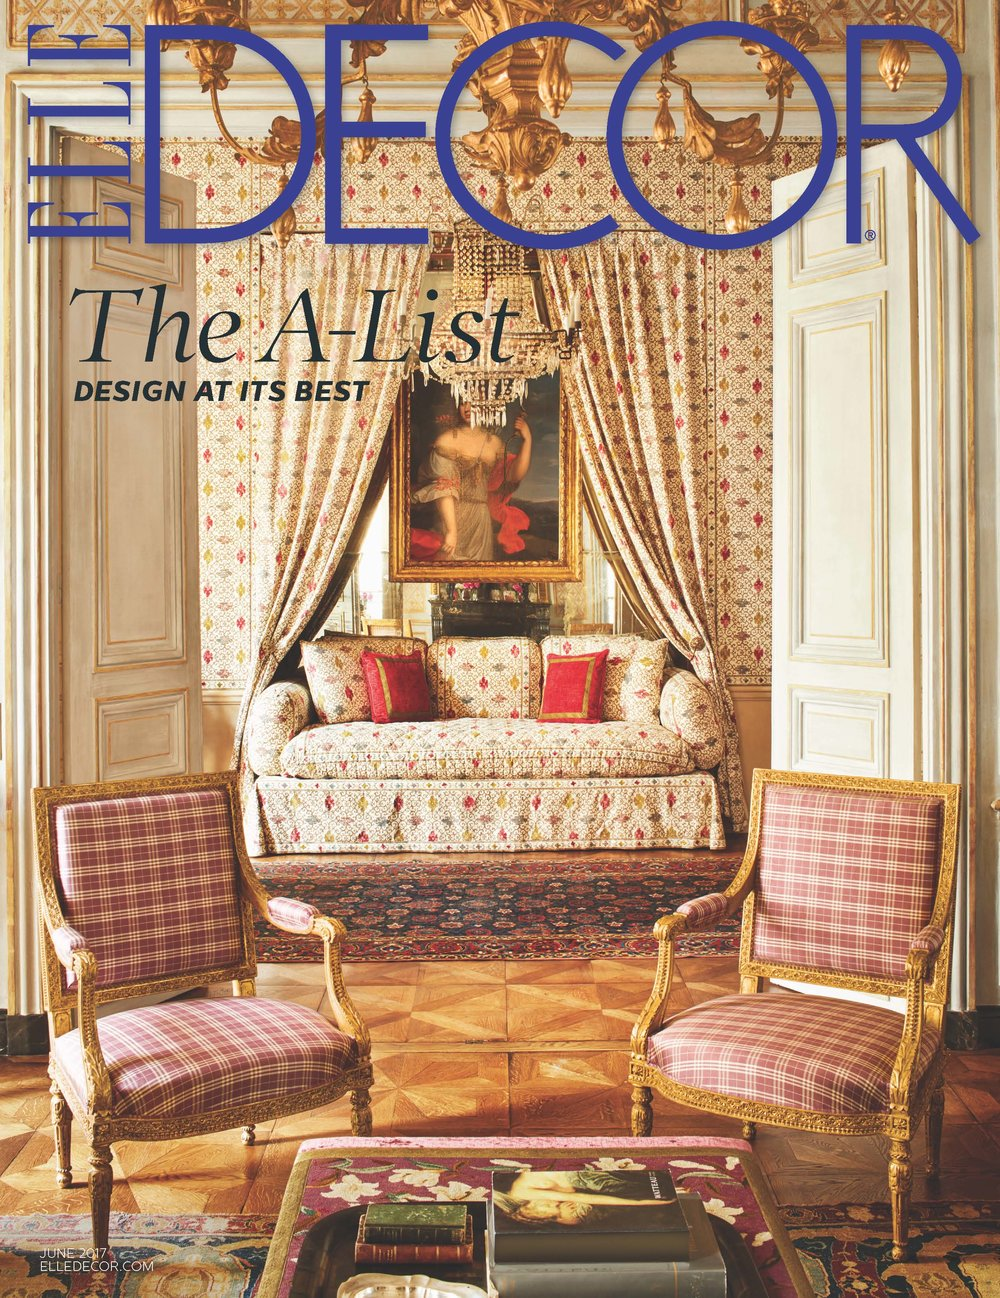 Elle Decor - What's Hot